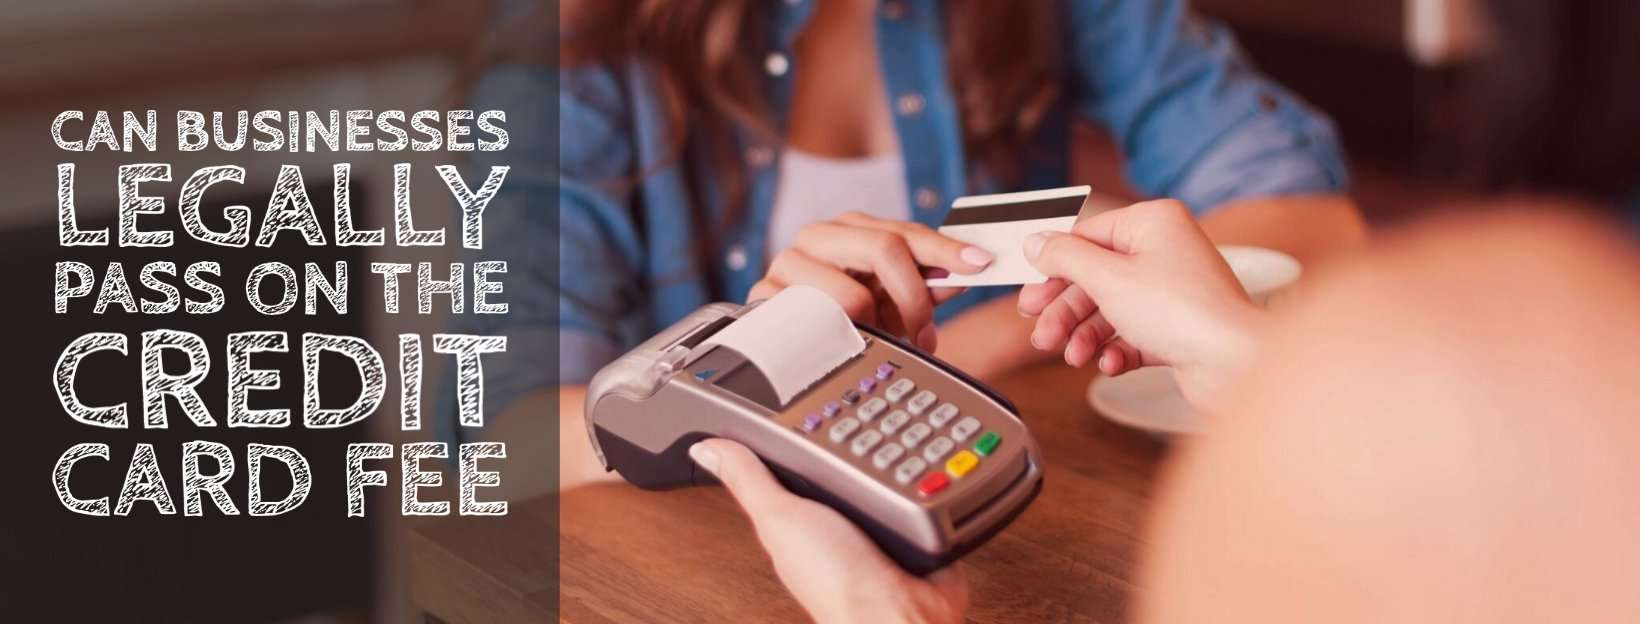 Can Businesses Legally pass on the credit card fee_